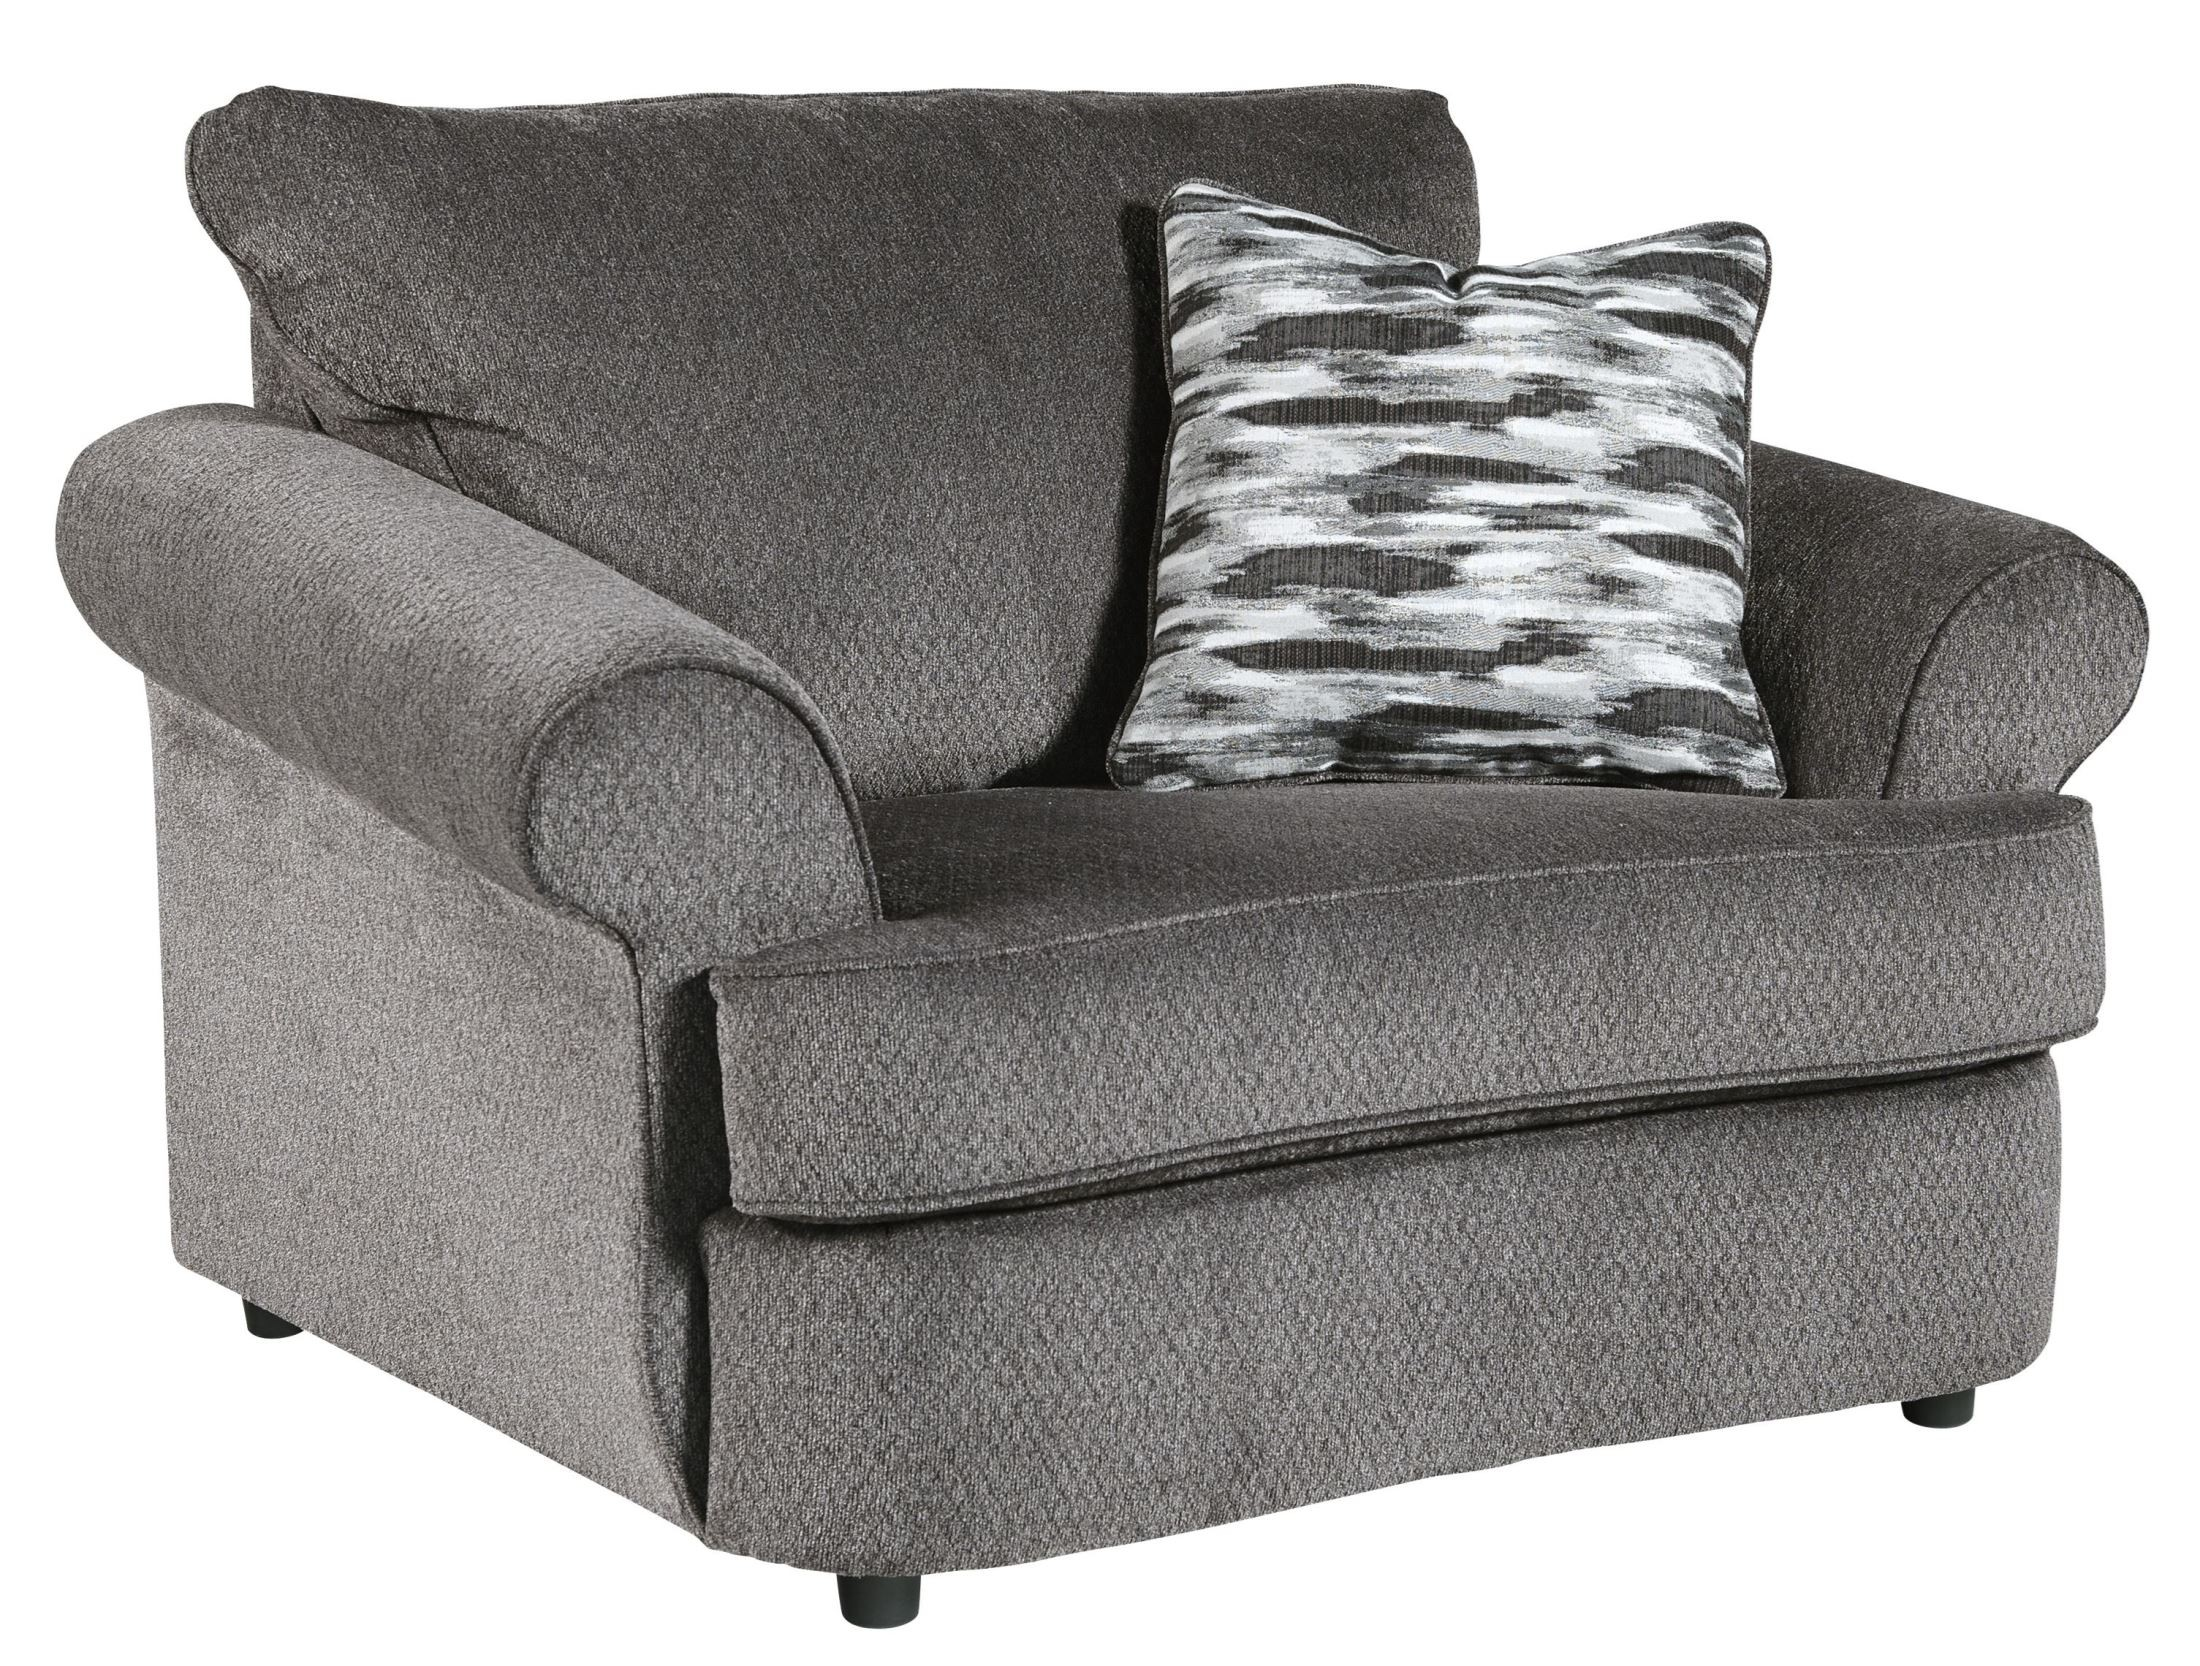 Allouette Ash Living Room Set from Ashley